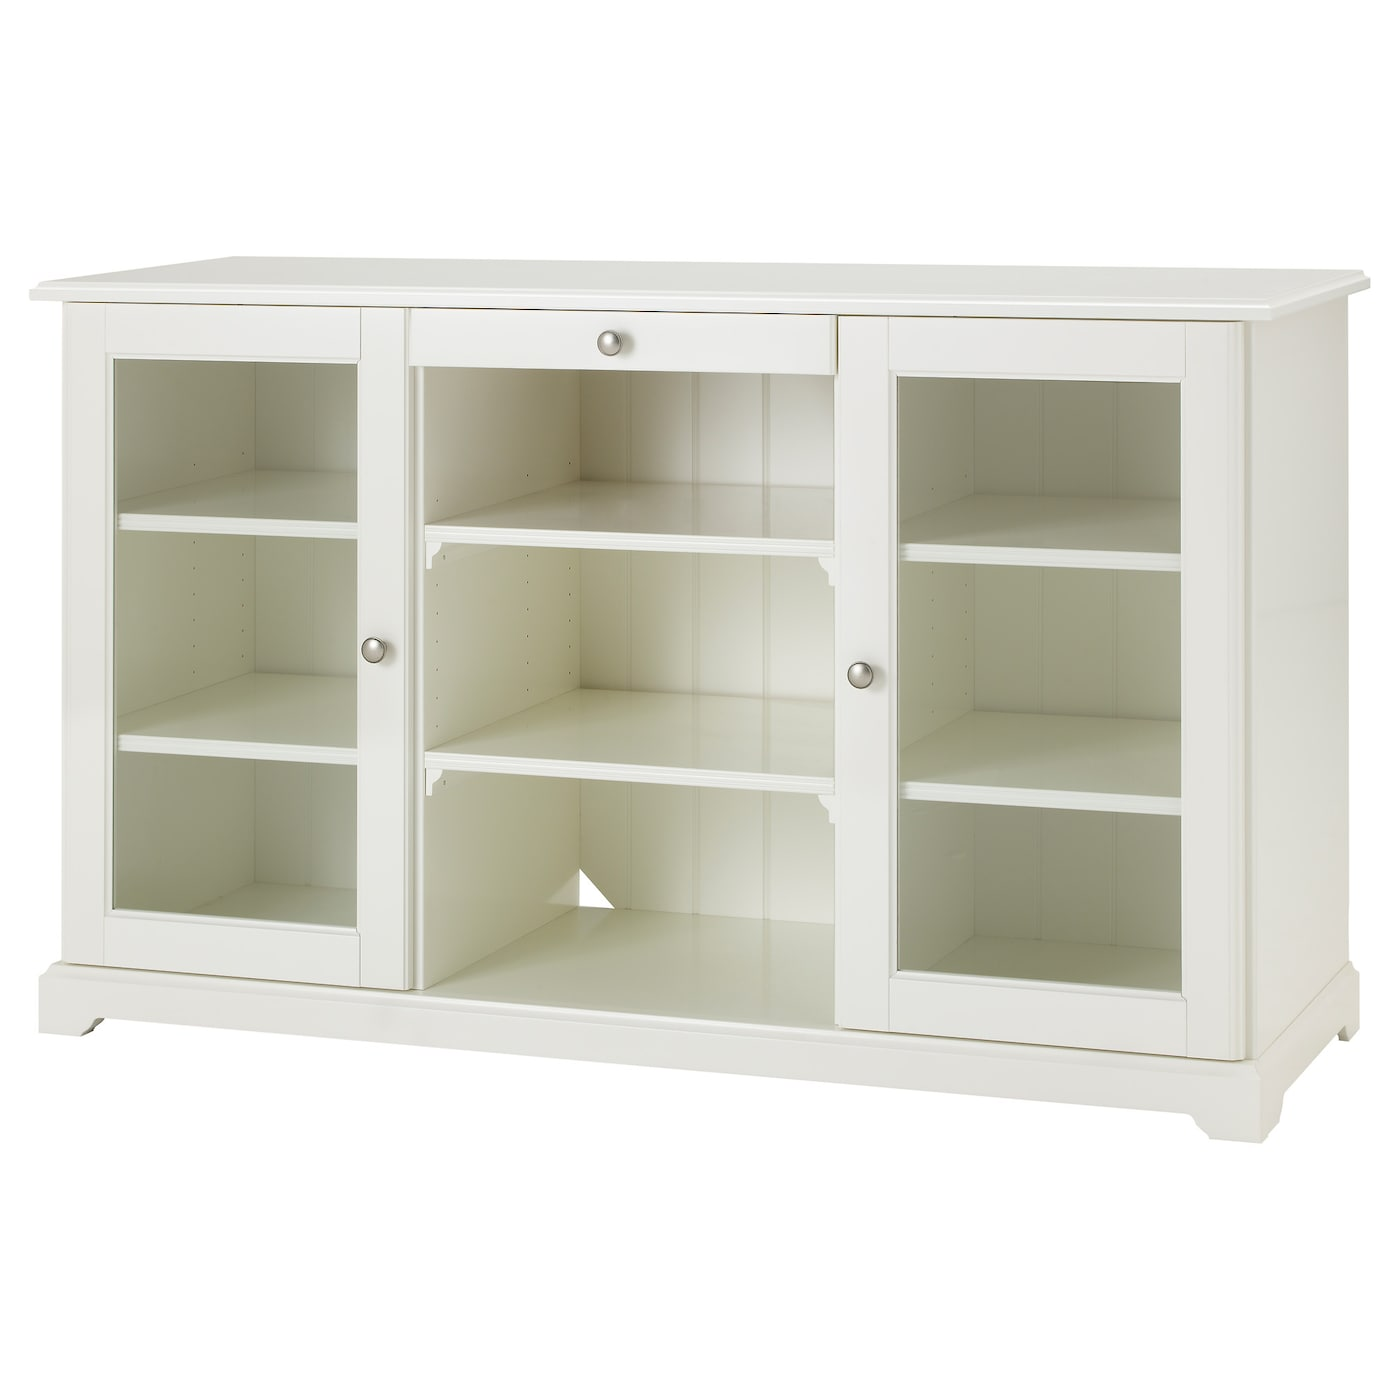 liatorp sideboard white 145 x 87 cm ikea. Black Bedroom Furniture Sets. Home Design Ideas